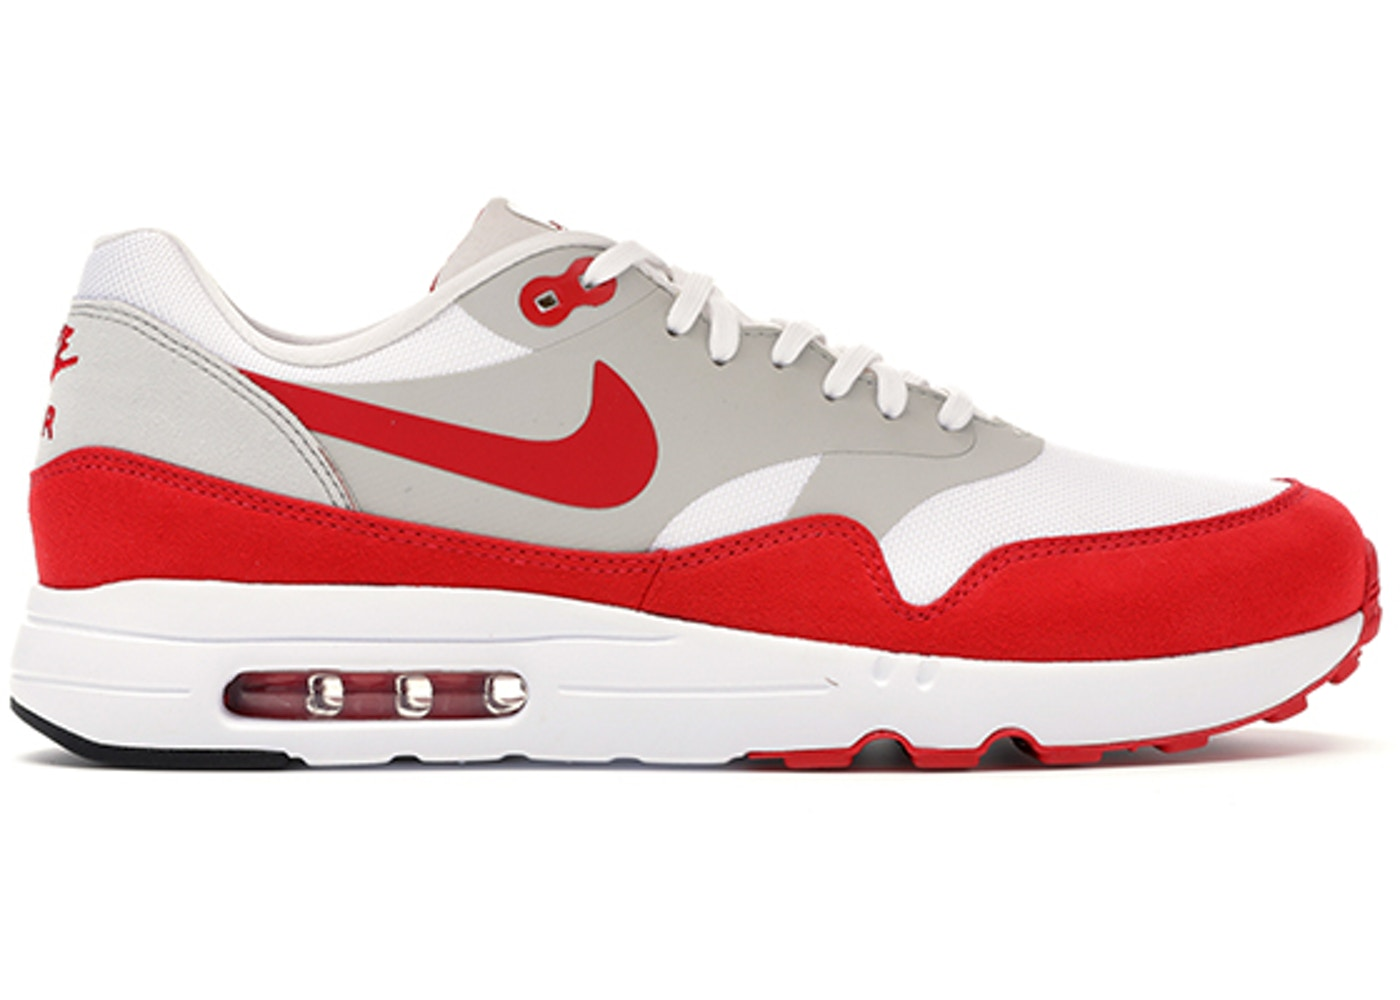 reputable site 1622f 48bc2 Air Max 1 Ultra Air Max Day Red (2017) - 908091-100